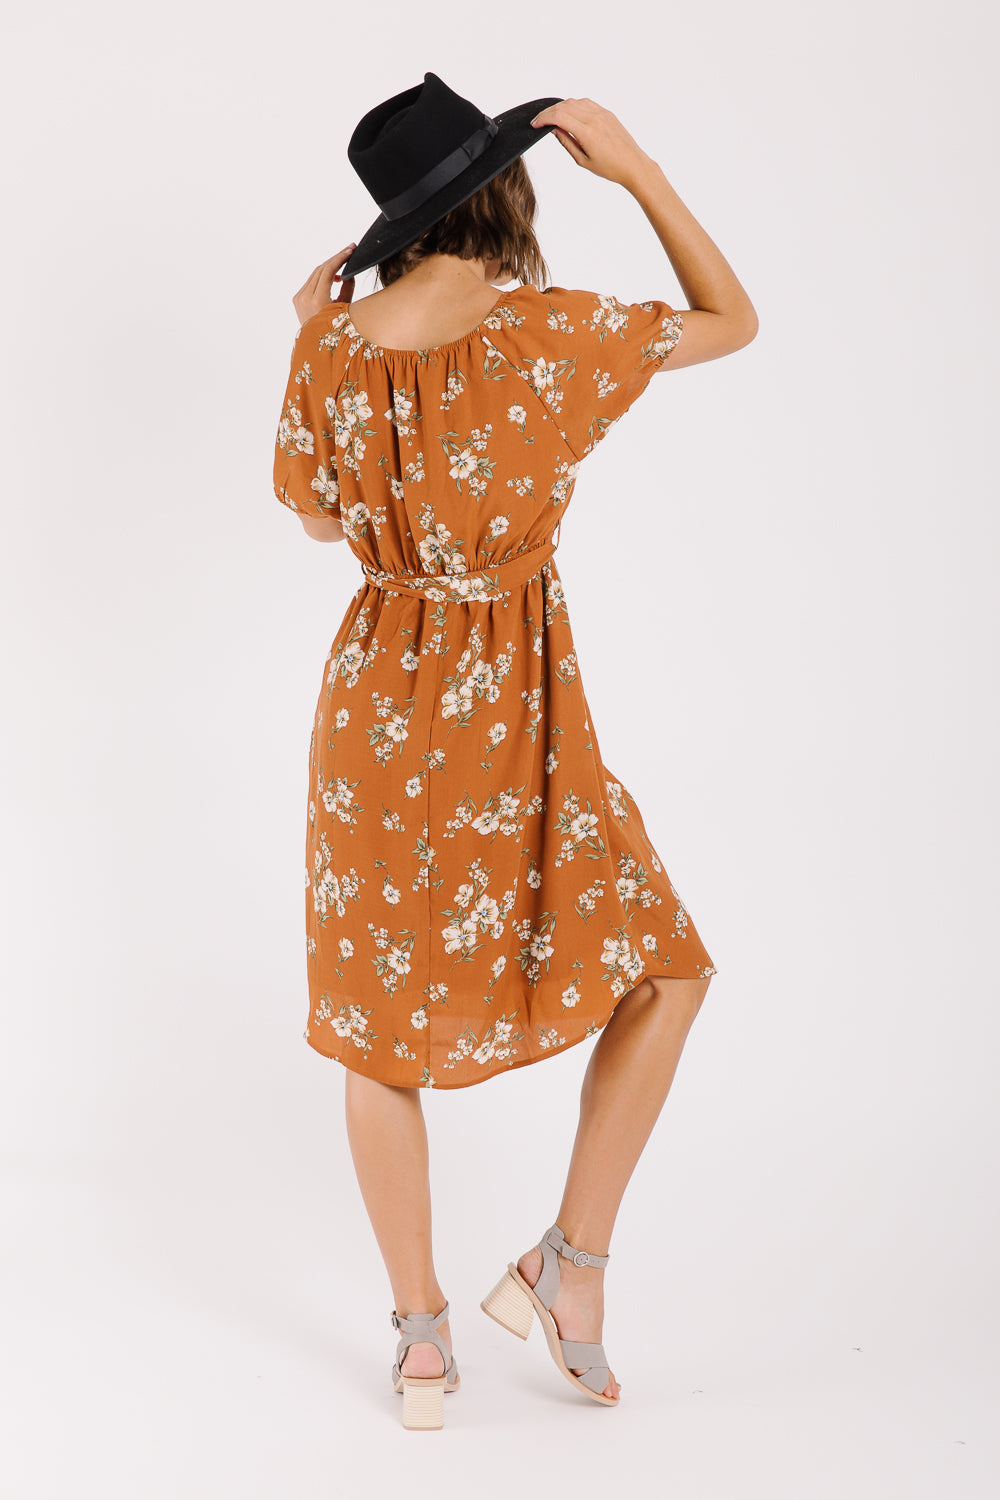 Piper & Scoot: The Bridge Floral Tie Dress in Camel